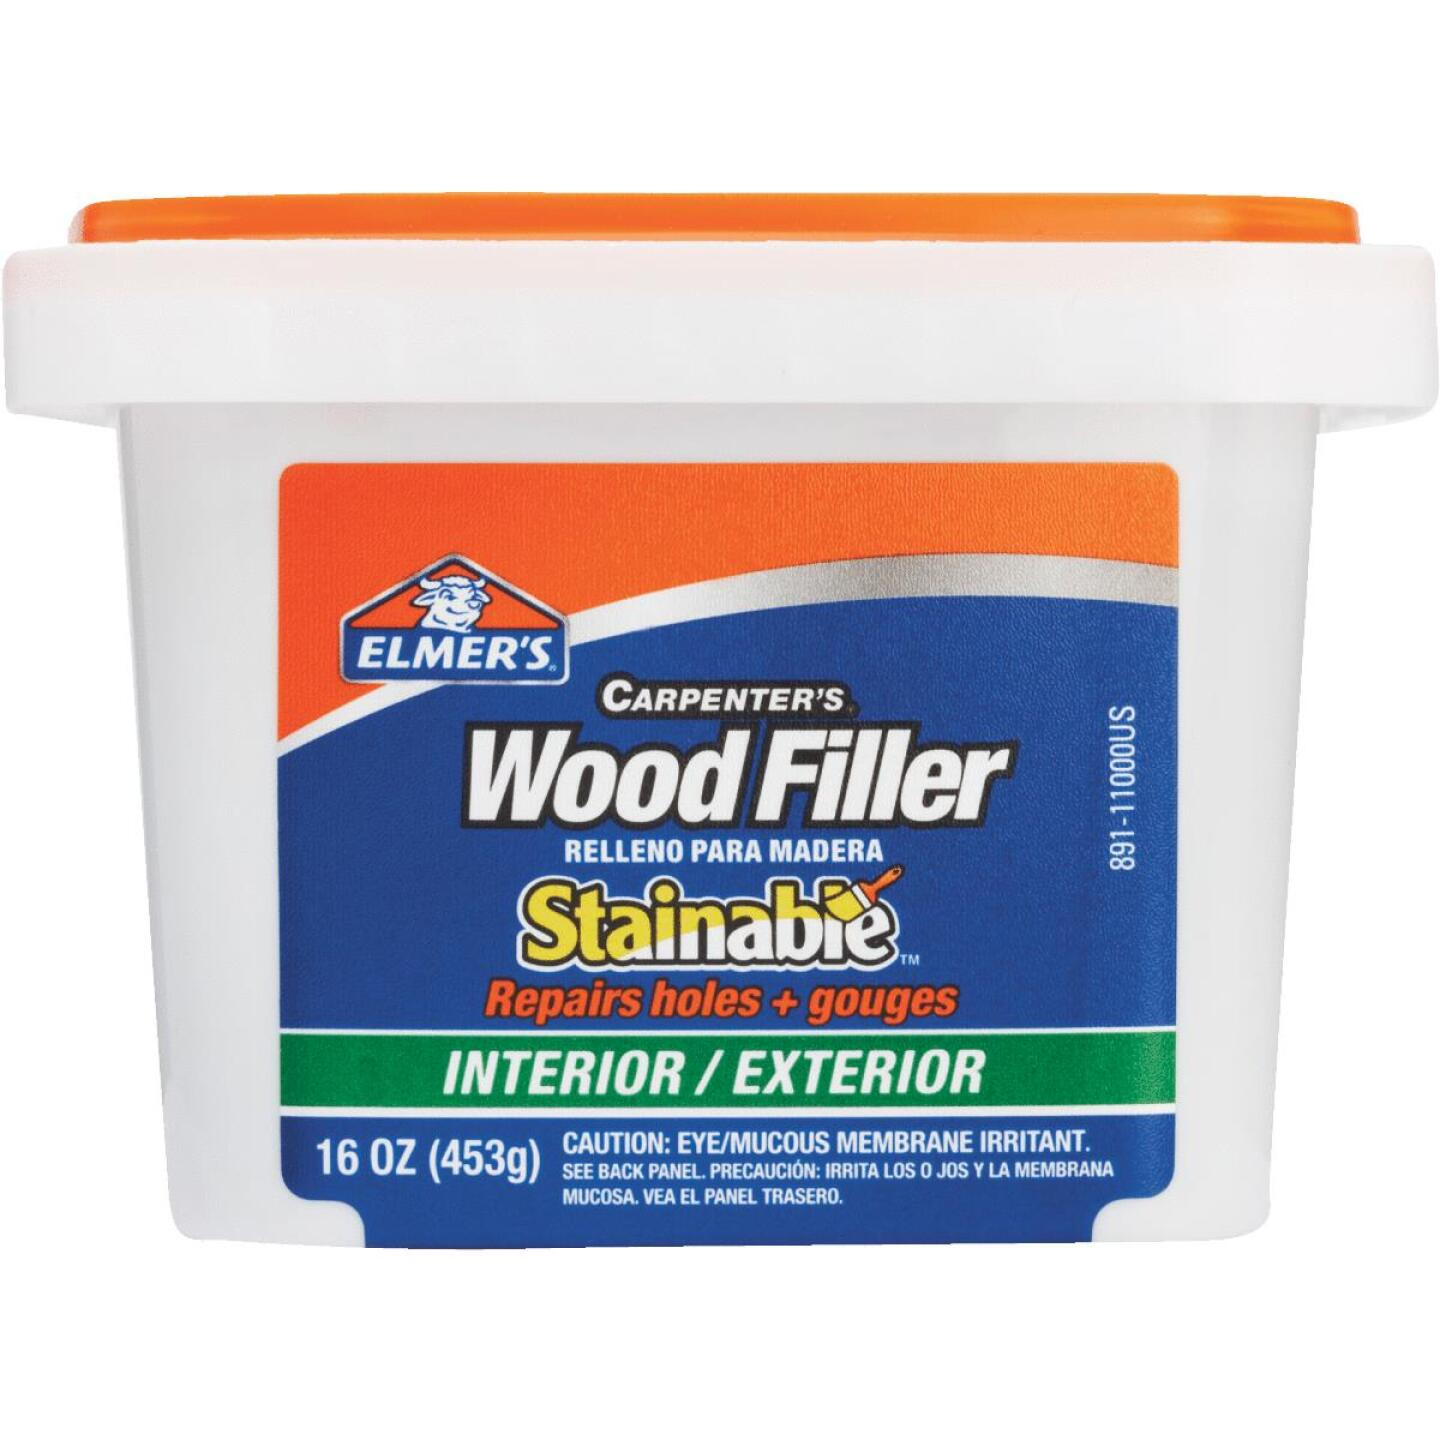 Elmer's Stainable Light Tan 16 Oz. Wood Filler Image 2